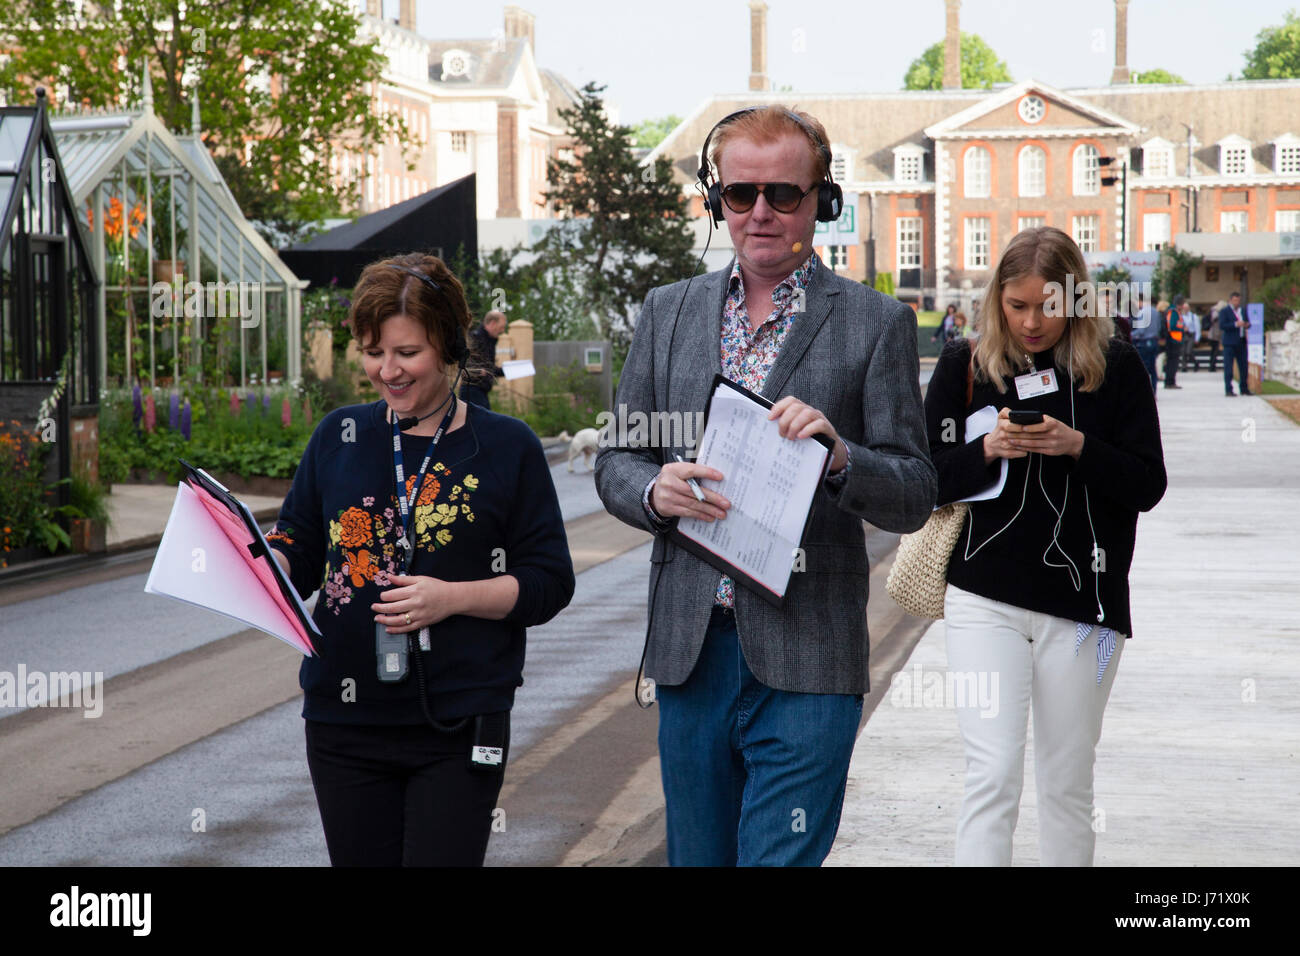 Chelsea Flower Show, London, England, 22nd May 2017. Chris Evans walking and broadcasting his breakfast show live - Stock Image